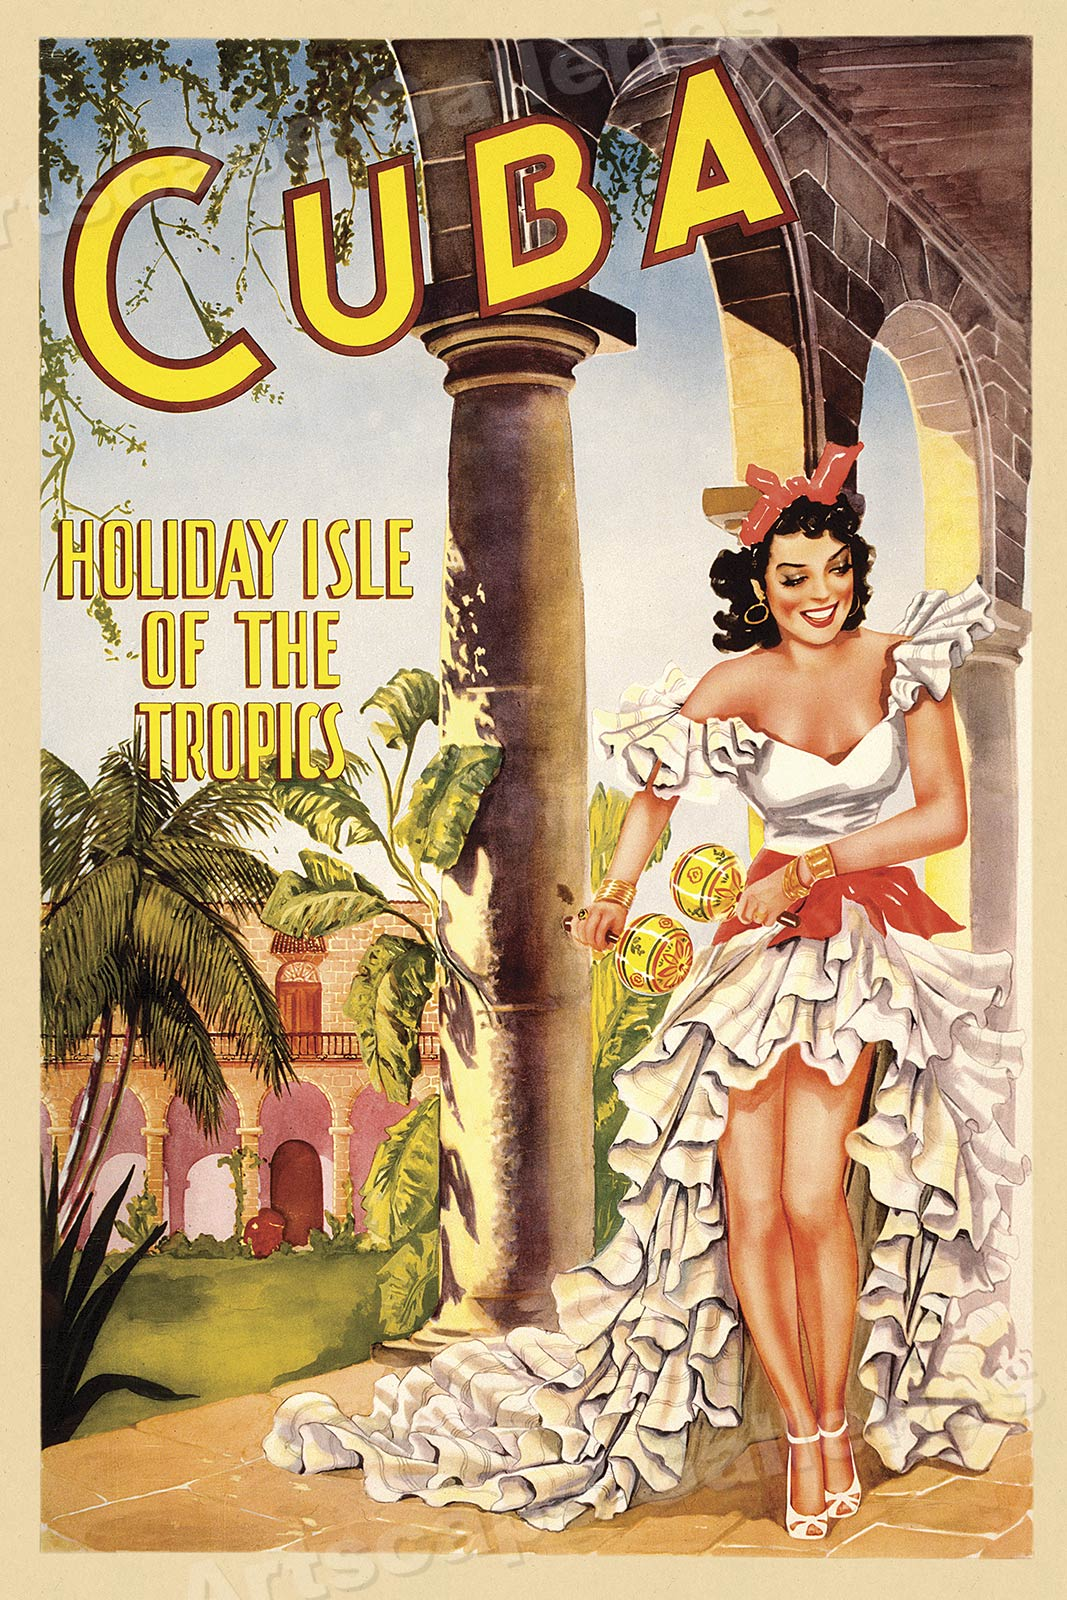 1940s Cuba Holiday Isle Classic Cuban Vintage Style Travel Poster ...